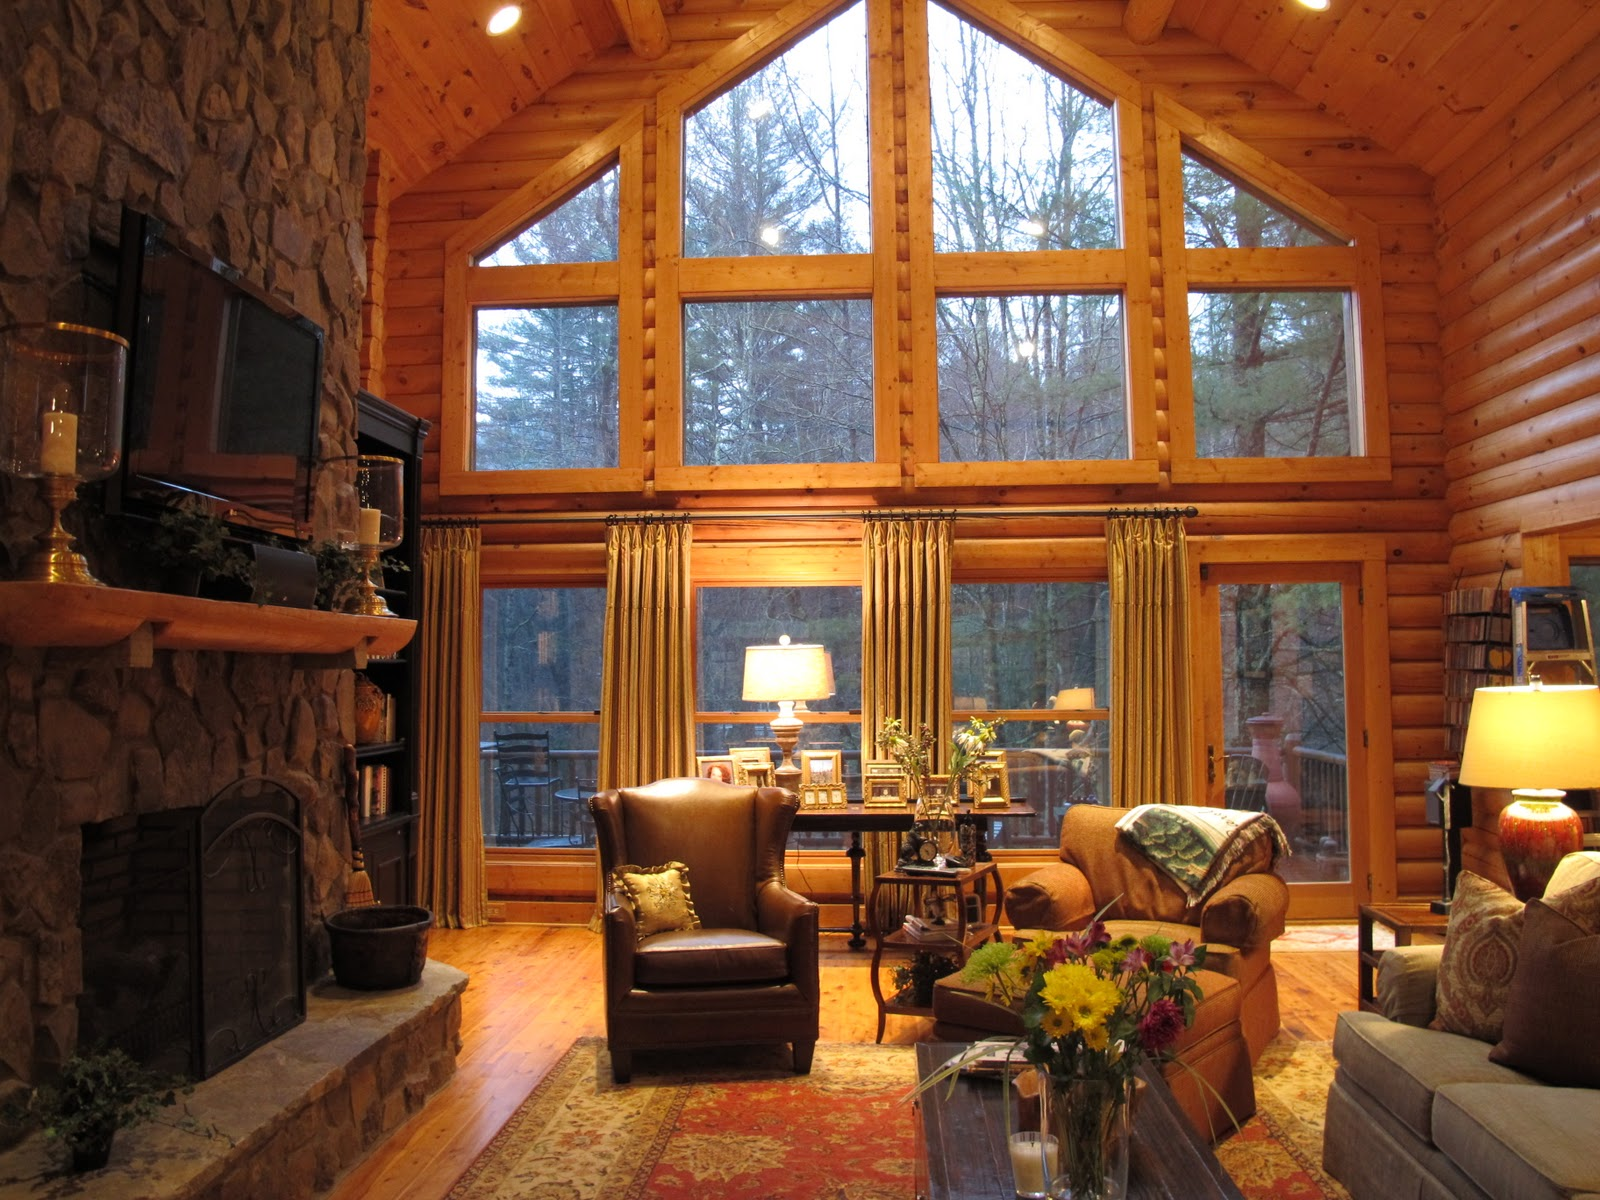 The side panels help soften the large log cabin living room